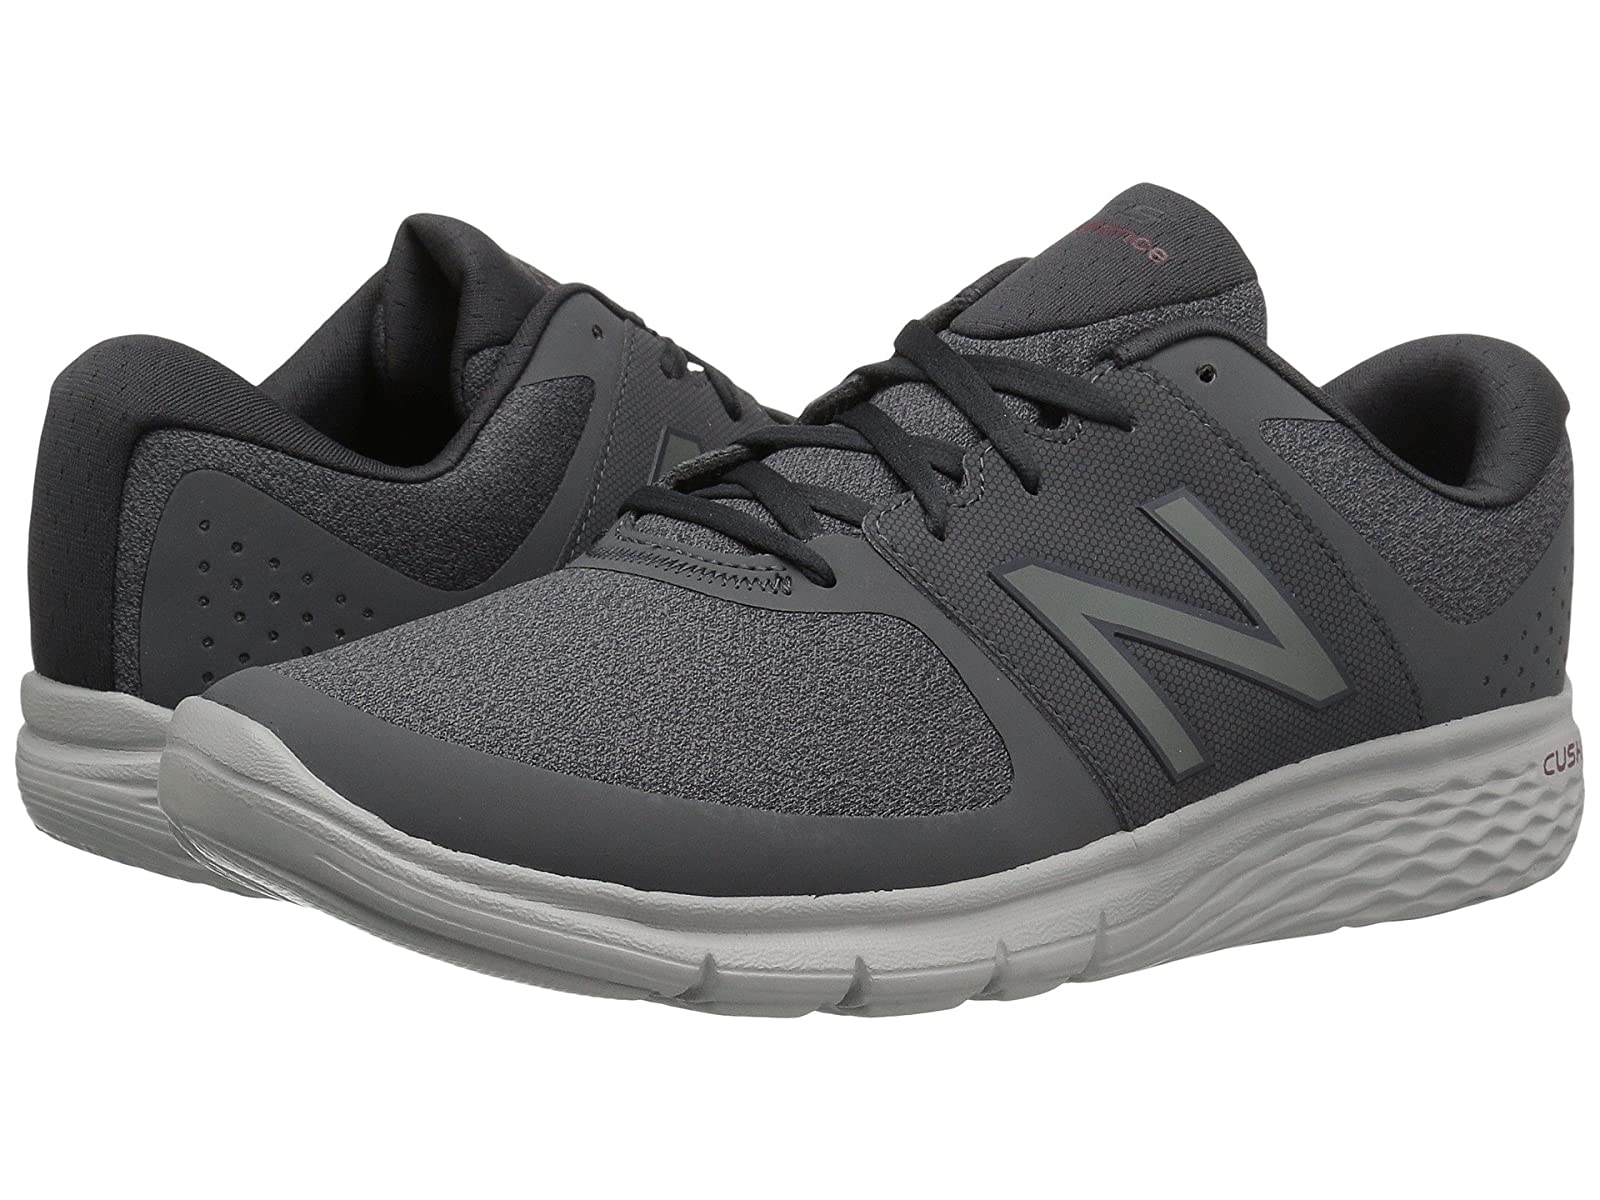 New Balance MA365v1Atmospheric grades have affordable shoes